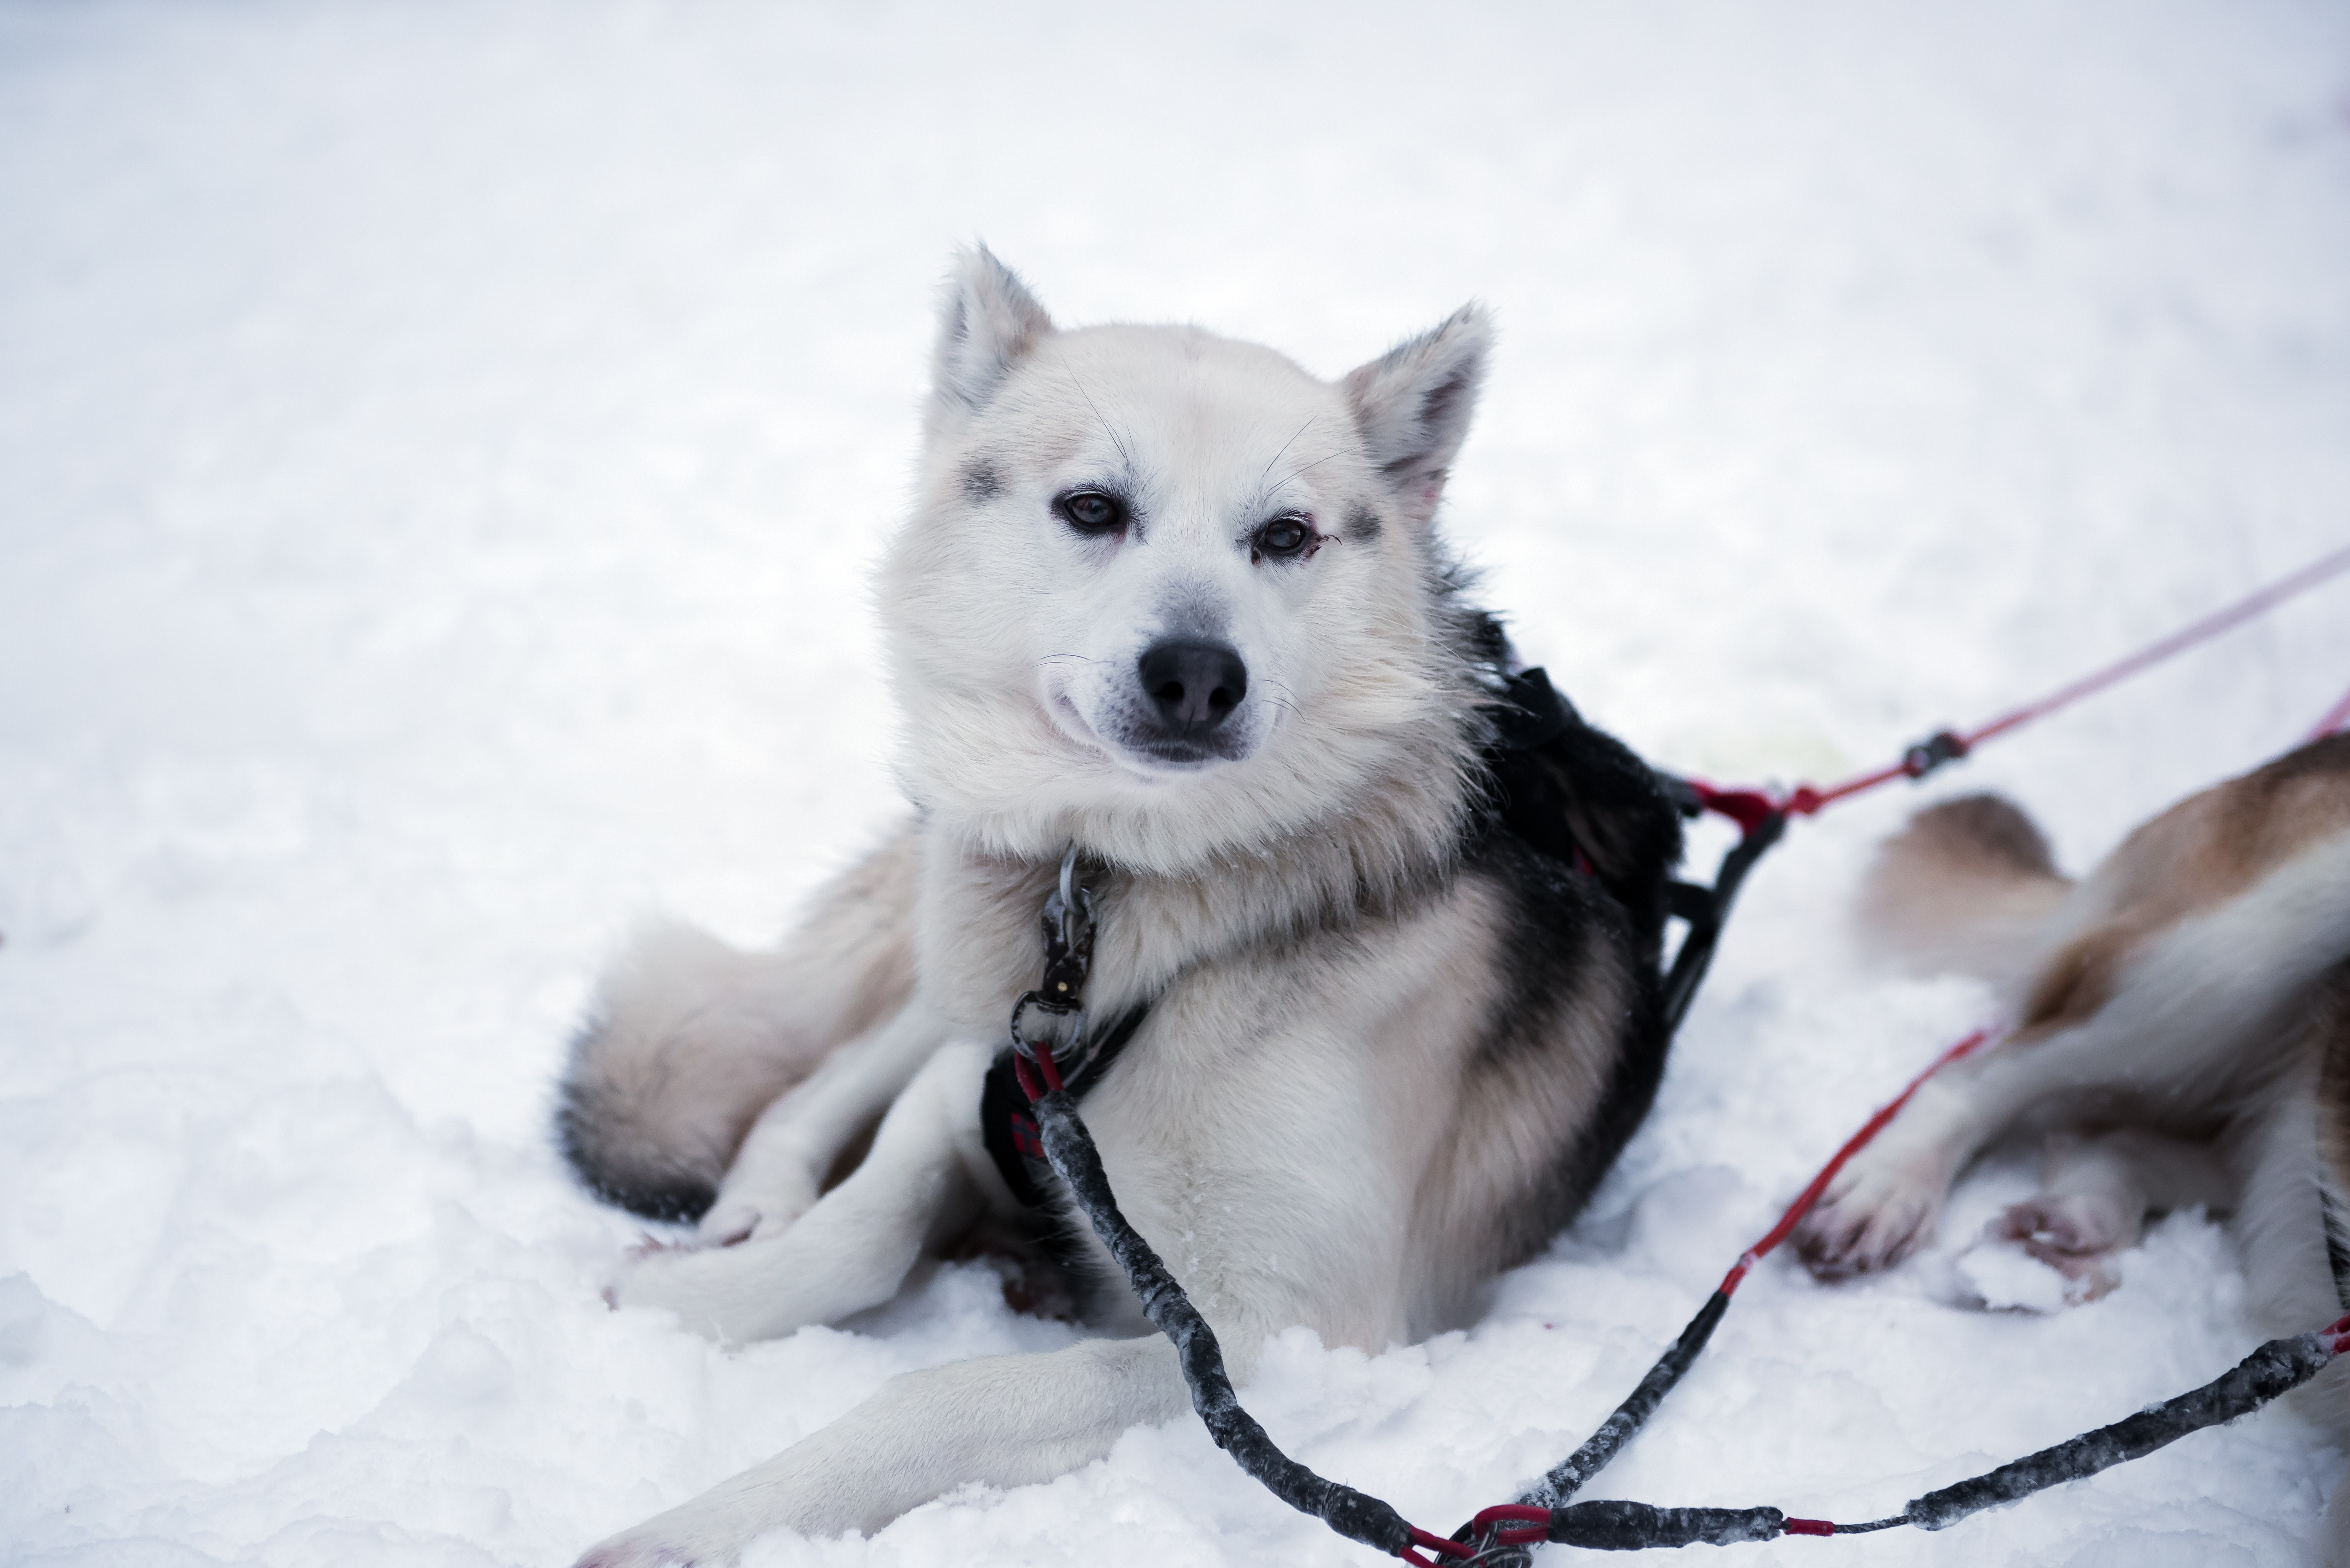 white and black dog lying on snow